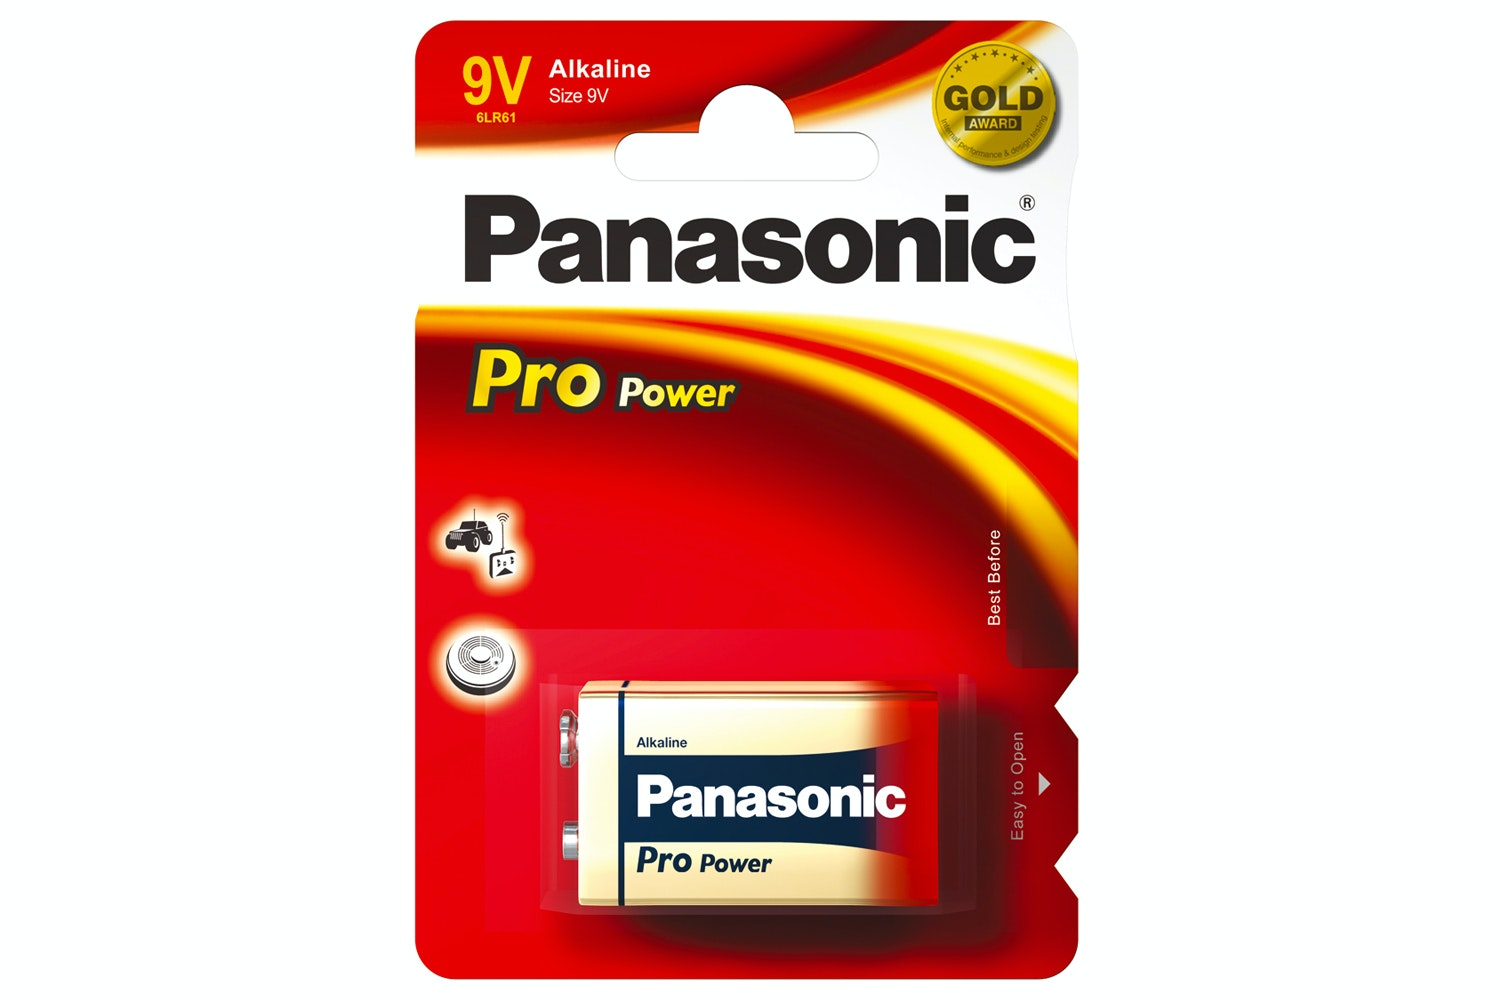 Panasonic Pro Power Gold Batteries | L6LR61X/1BP